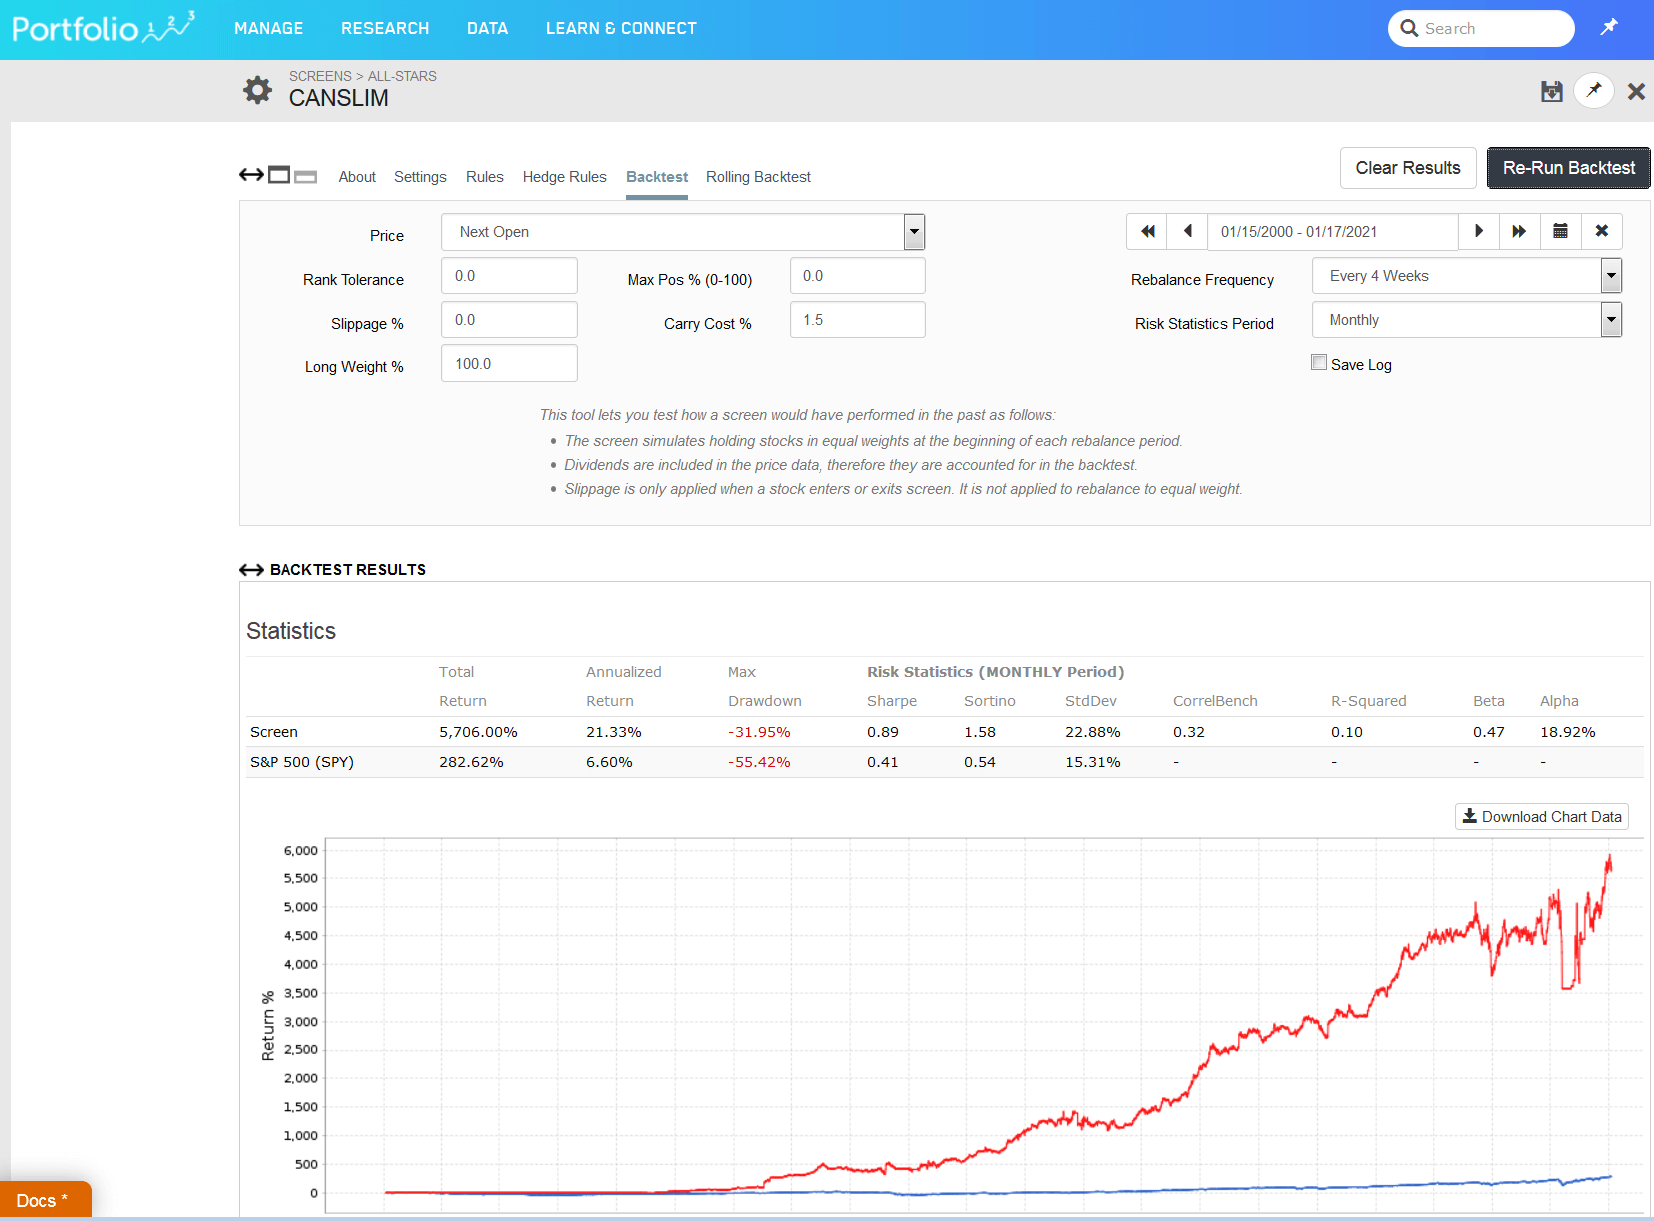 CANSLIM Backtest Results